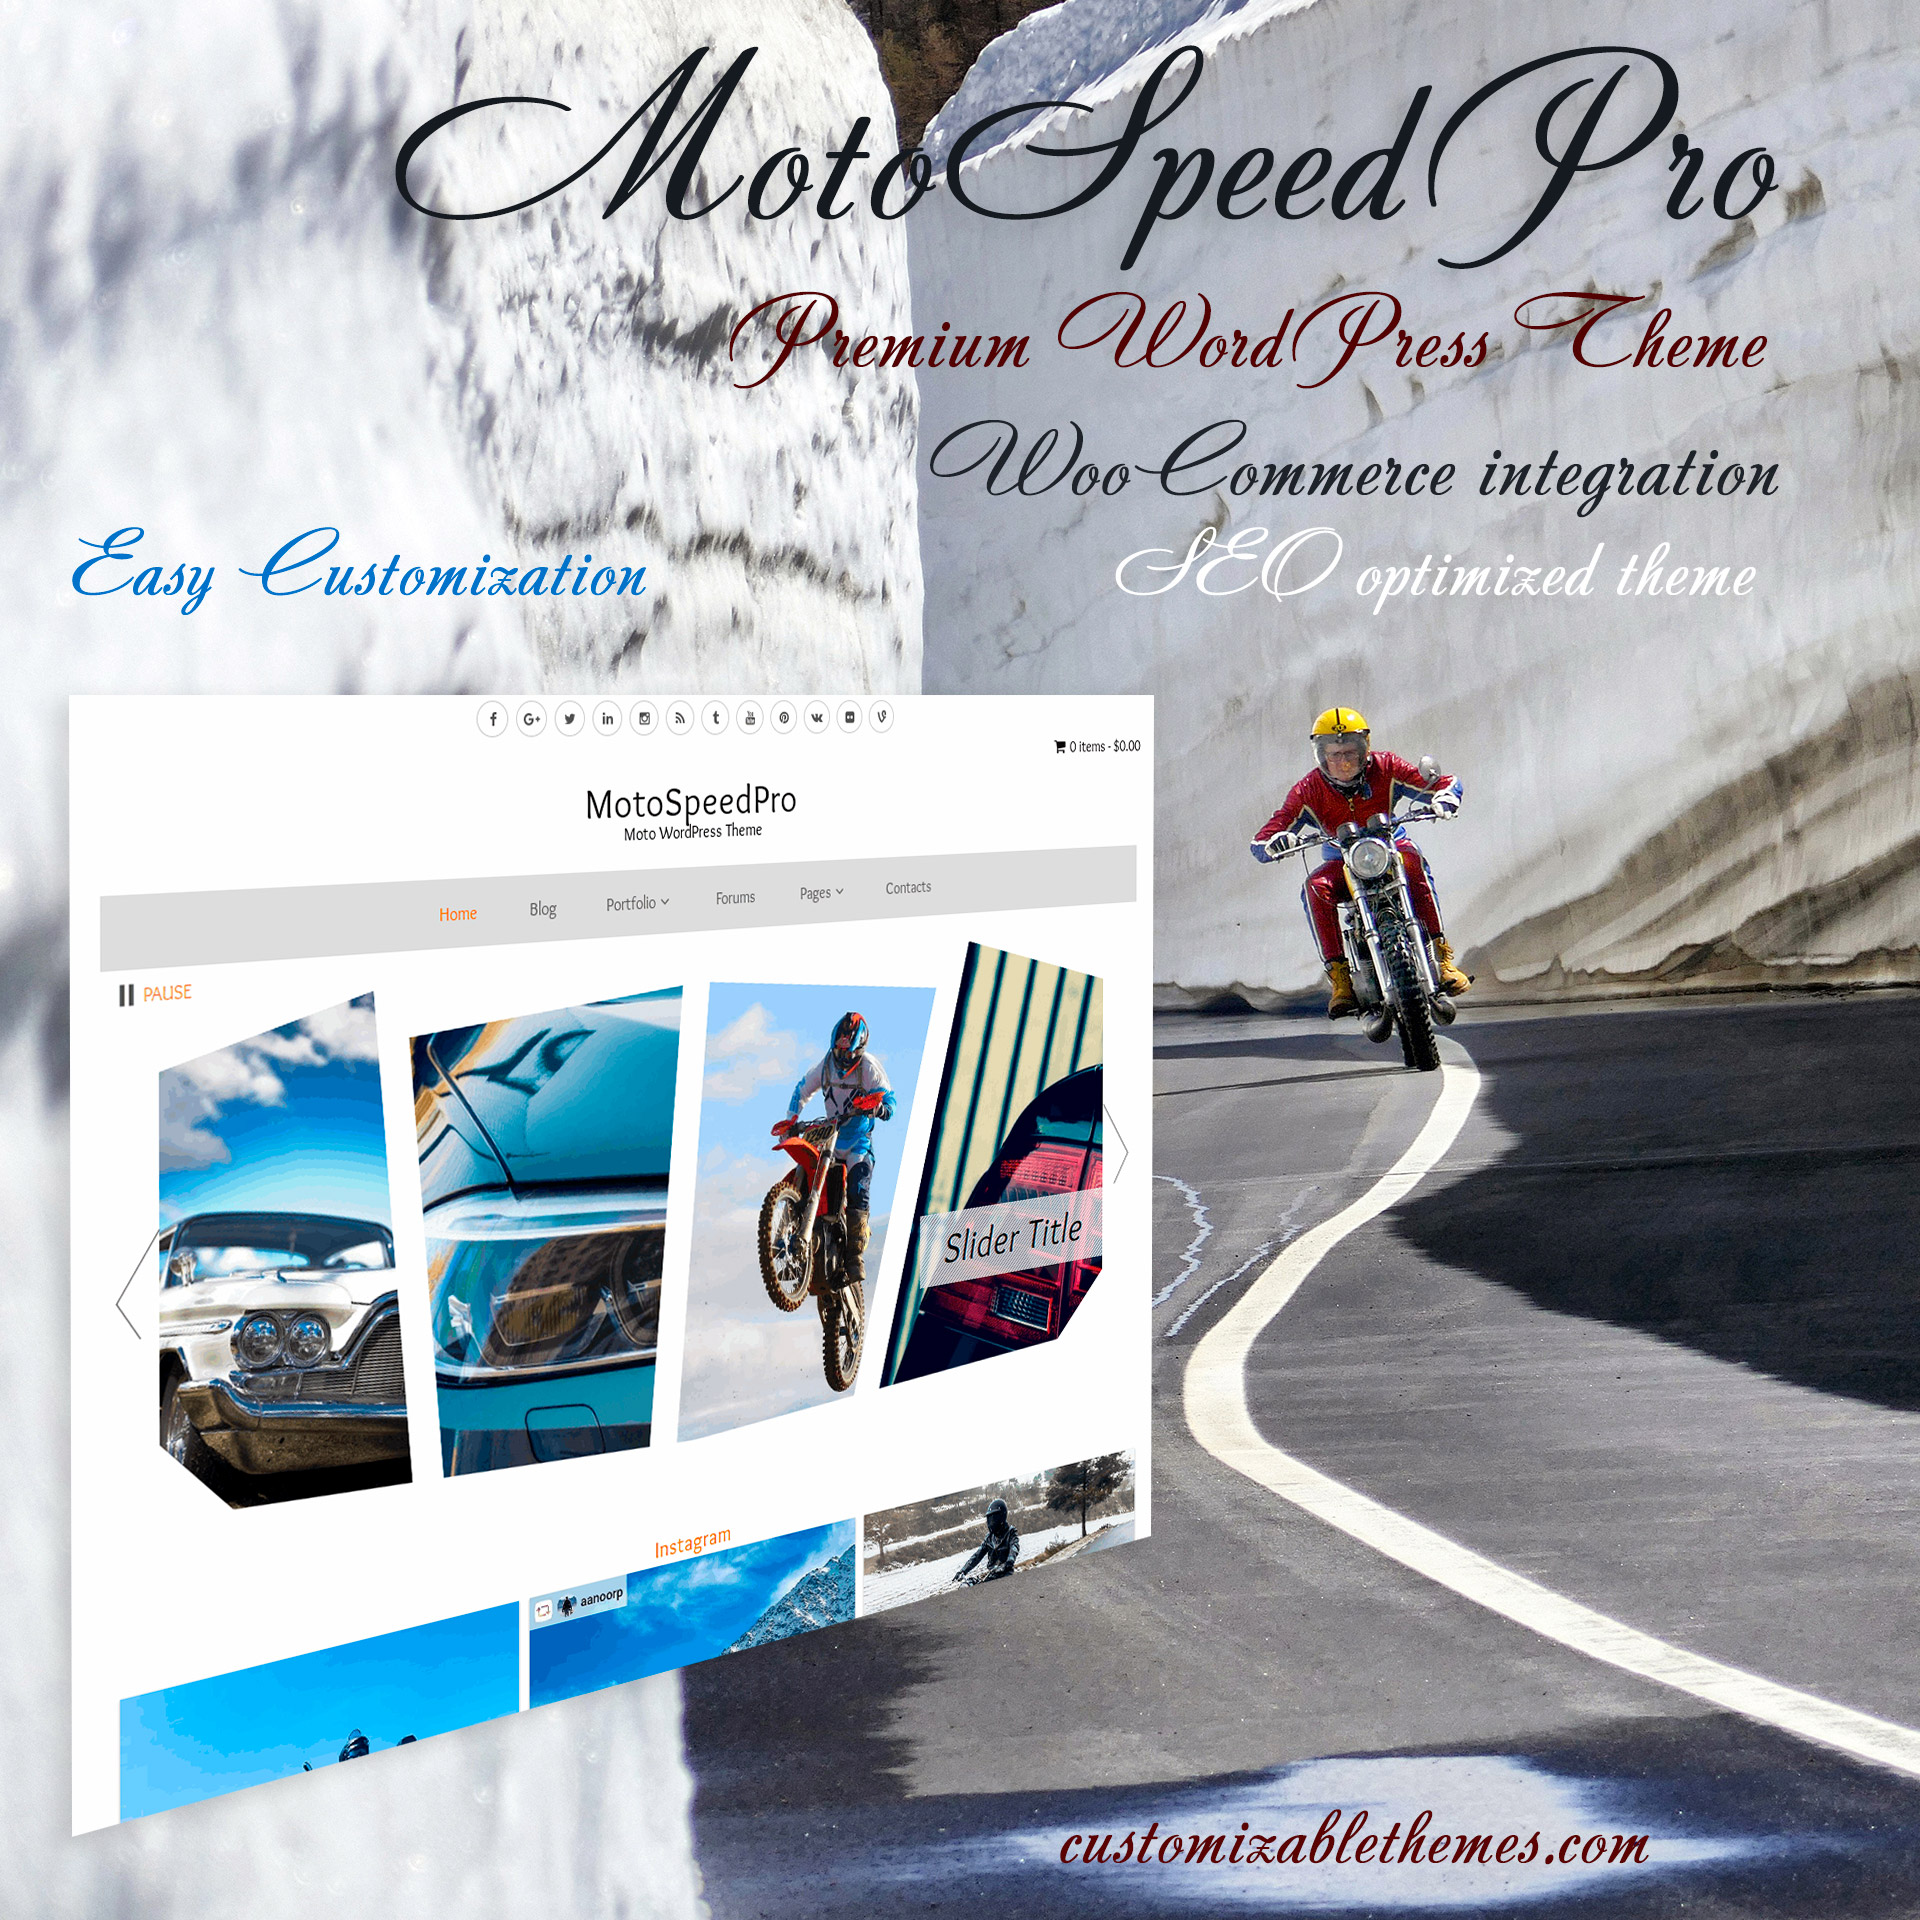 motospeedpro-premium-wordpress-theme-mockup-customizablethemes-com